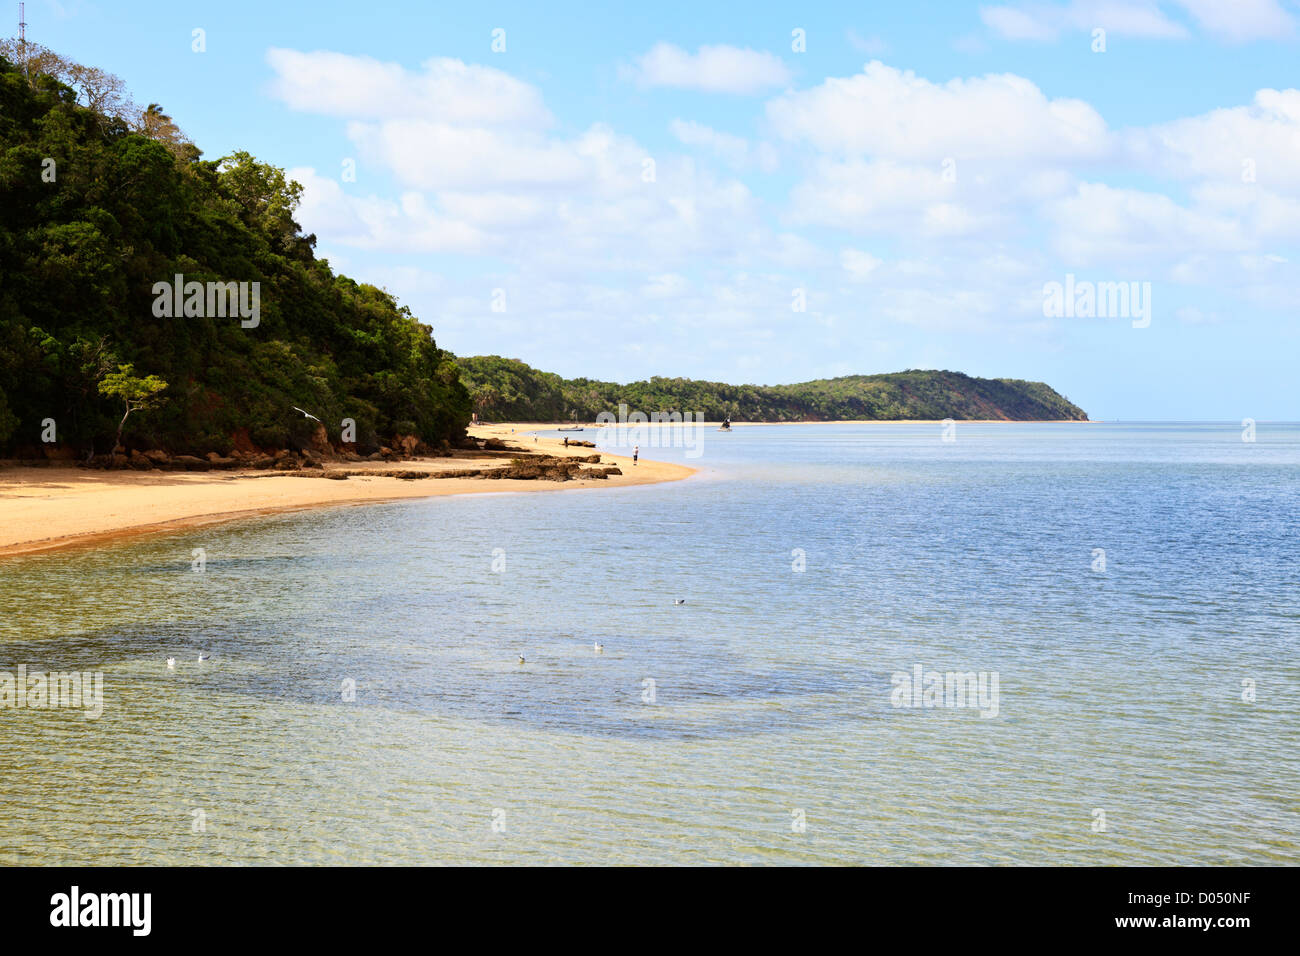 A view along the leeward shore of Inhaca Island Mozambique Stock Photo